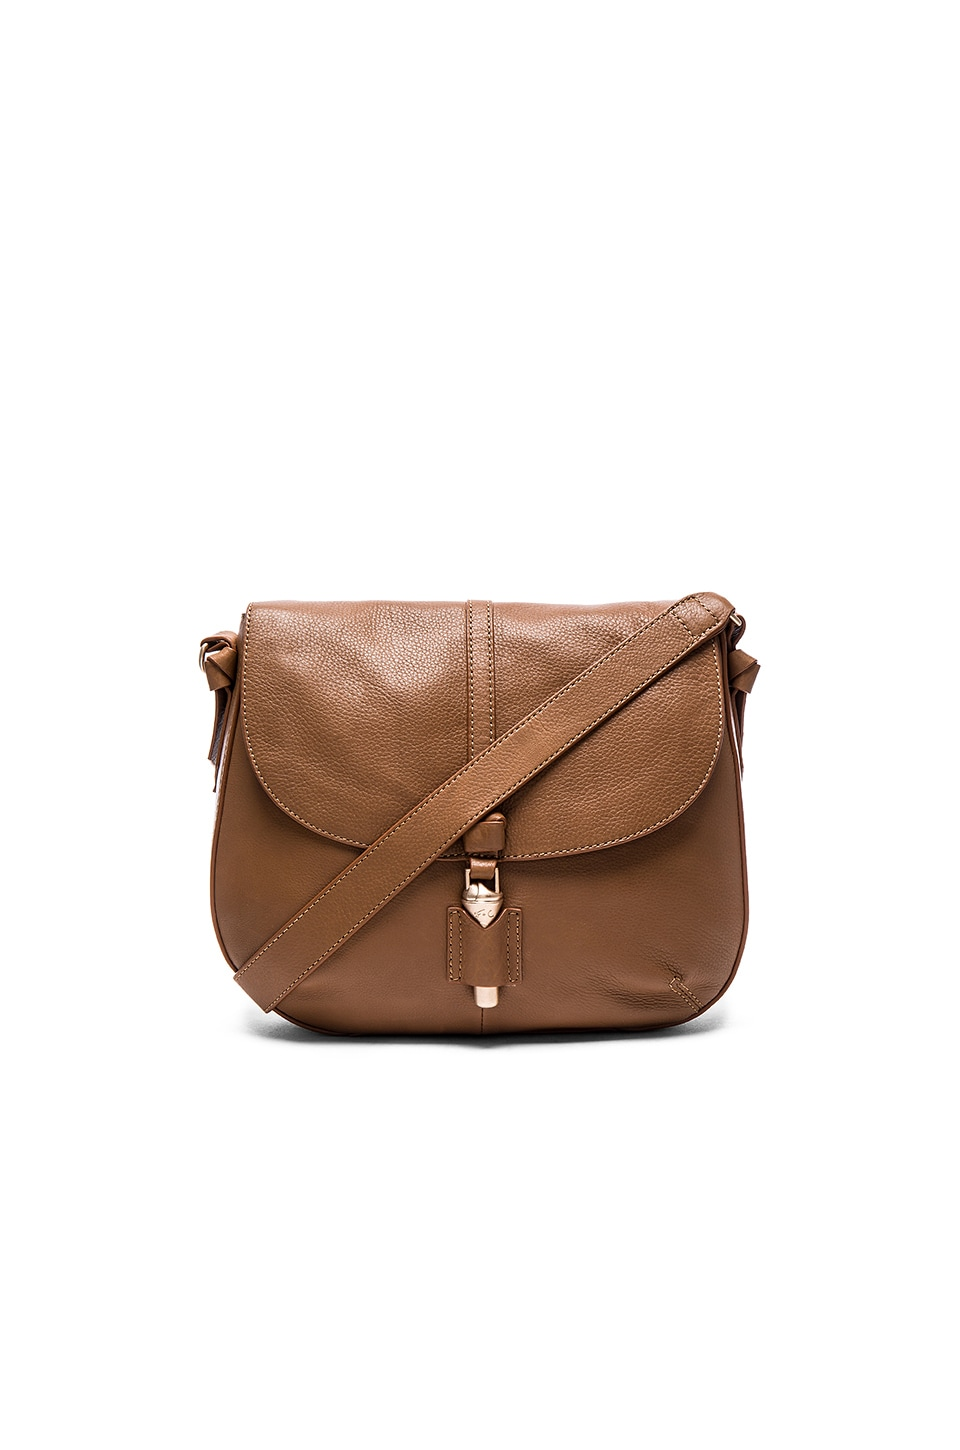 Foley + Corinna Mia Saddle Bag in Chestnut